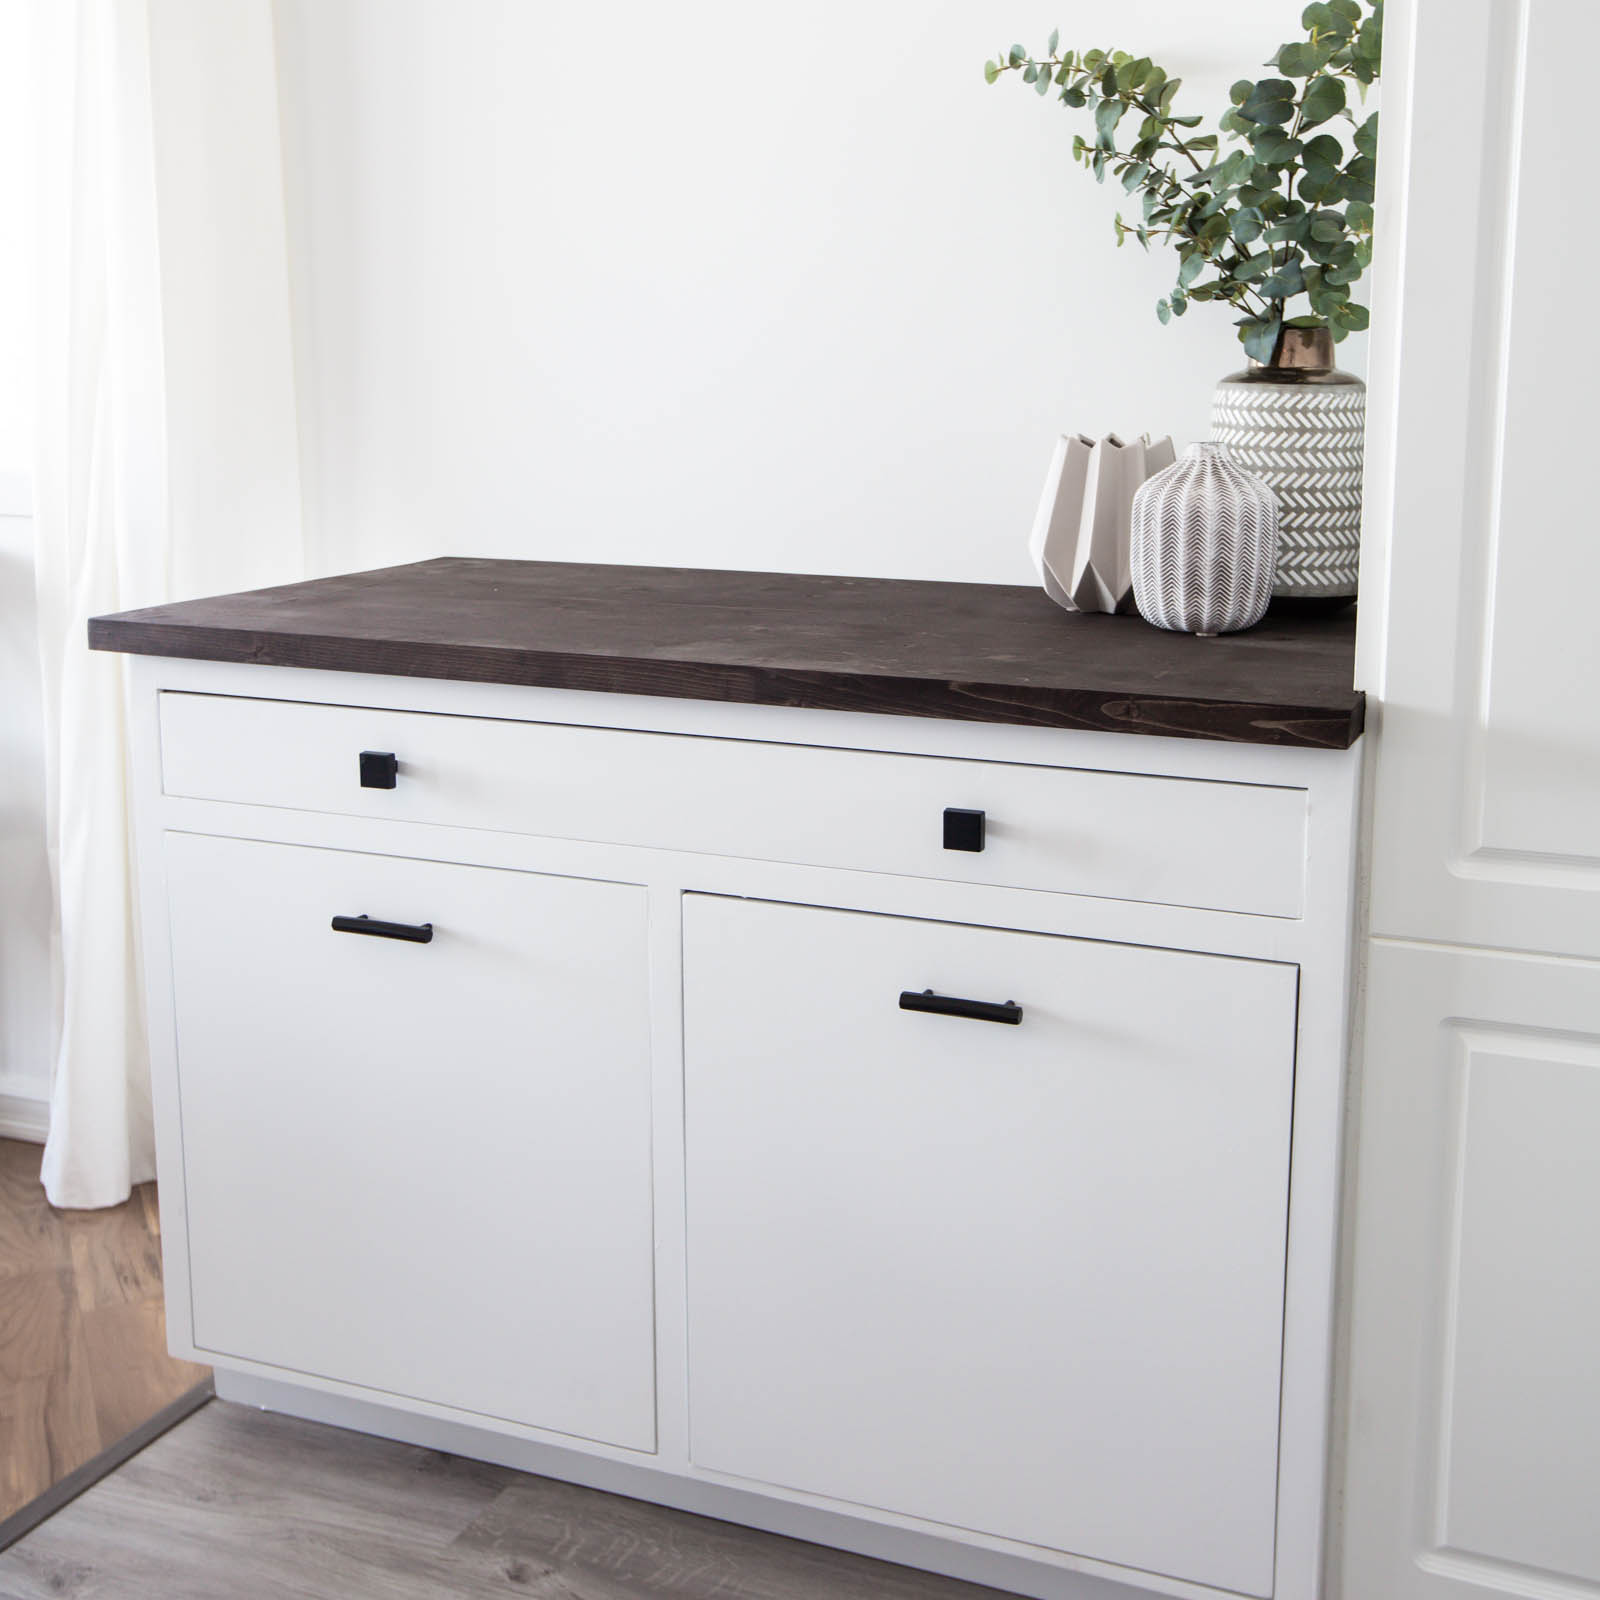 diy pull out trash can cabinet love create celebrate. Black Bedroom Furniture Sets. Home Design Ideas